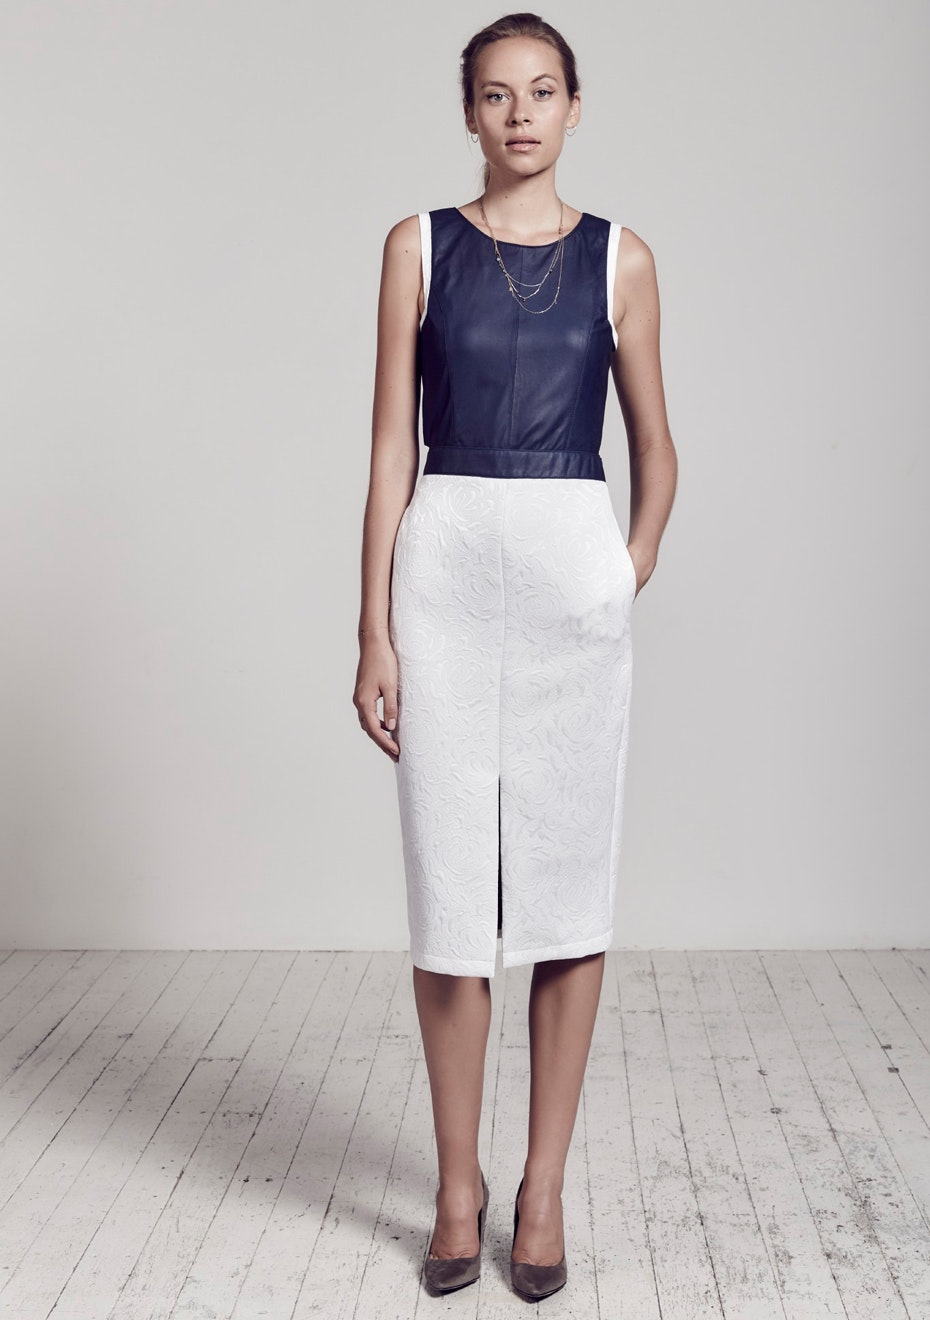 West 14th - Audrey Dress - Mix Material   - White + Blueberry Leather